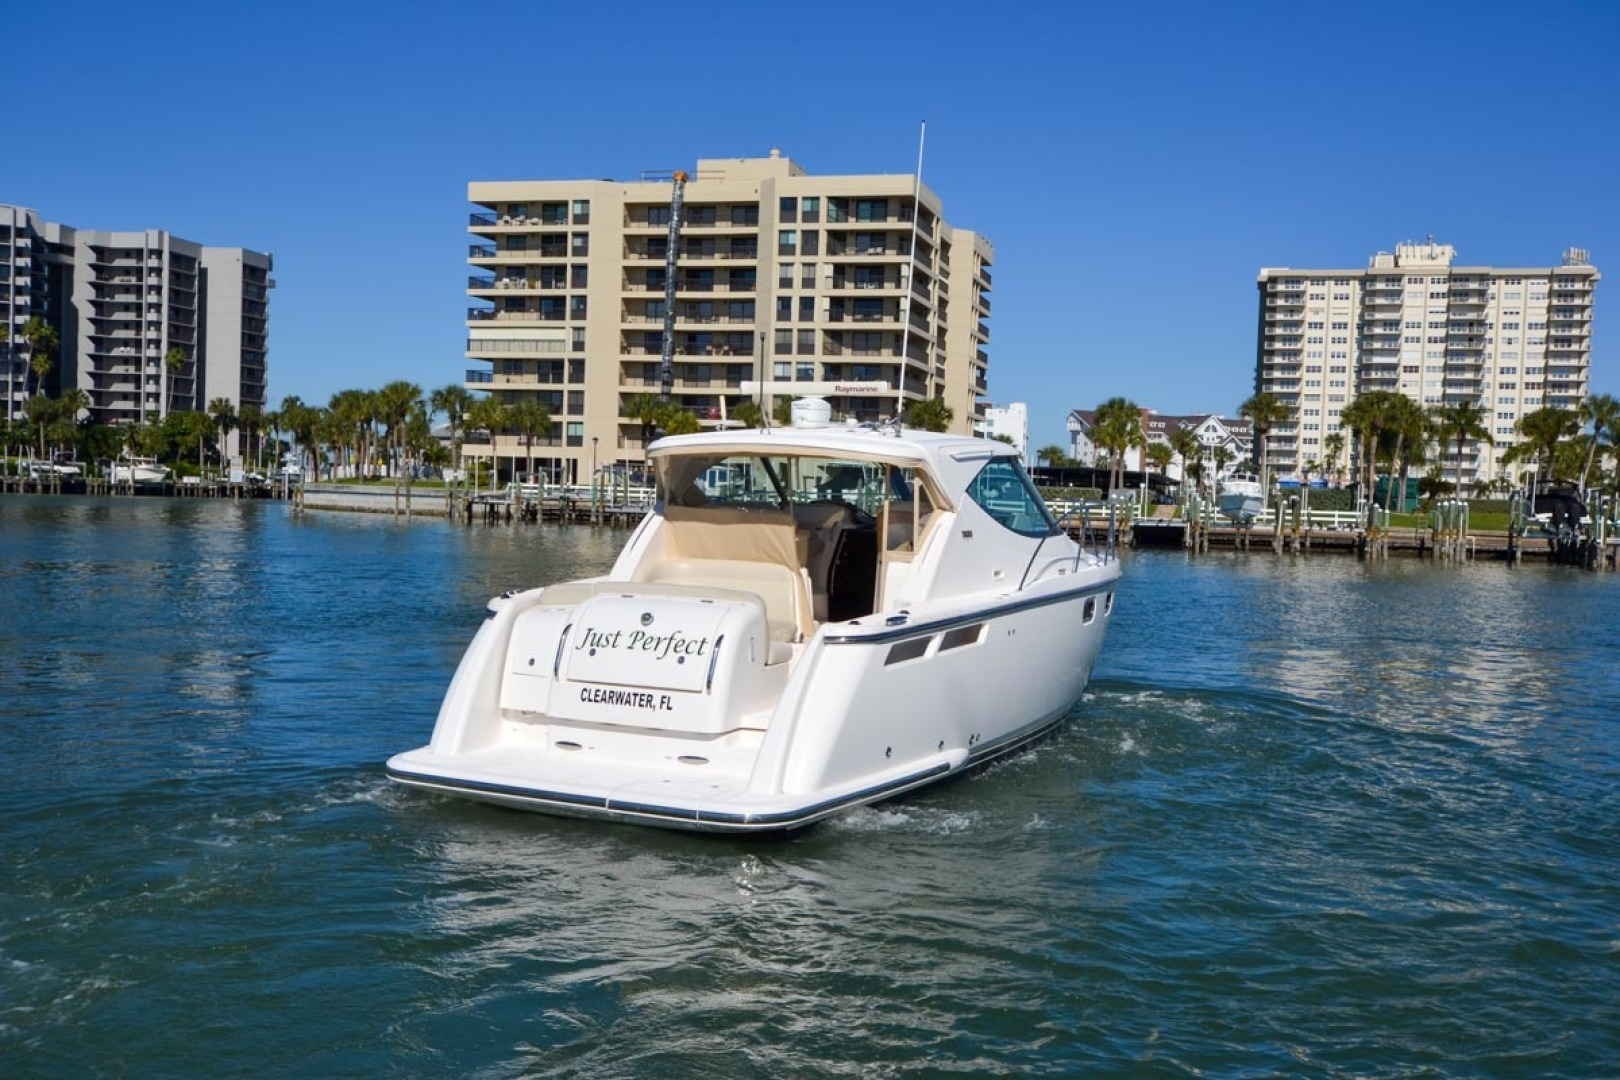 Tiara Yachts-35 sovran 2008-Just Perfect Clearwater-Florida-United States-1577466 | Thumbnail